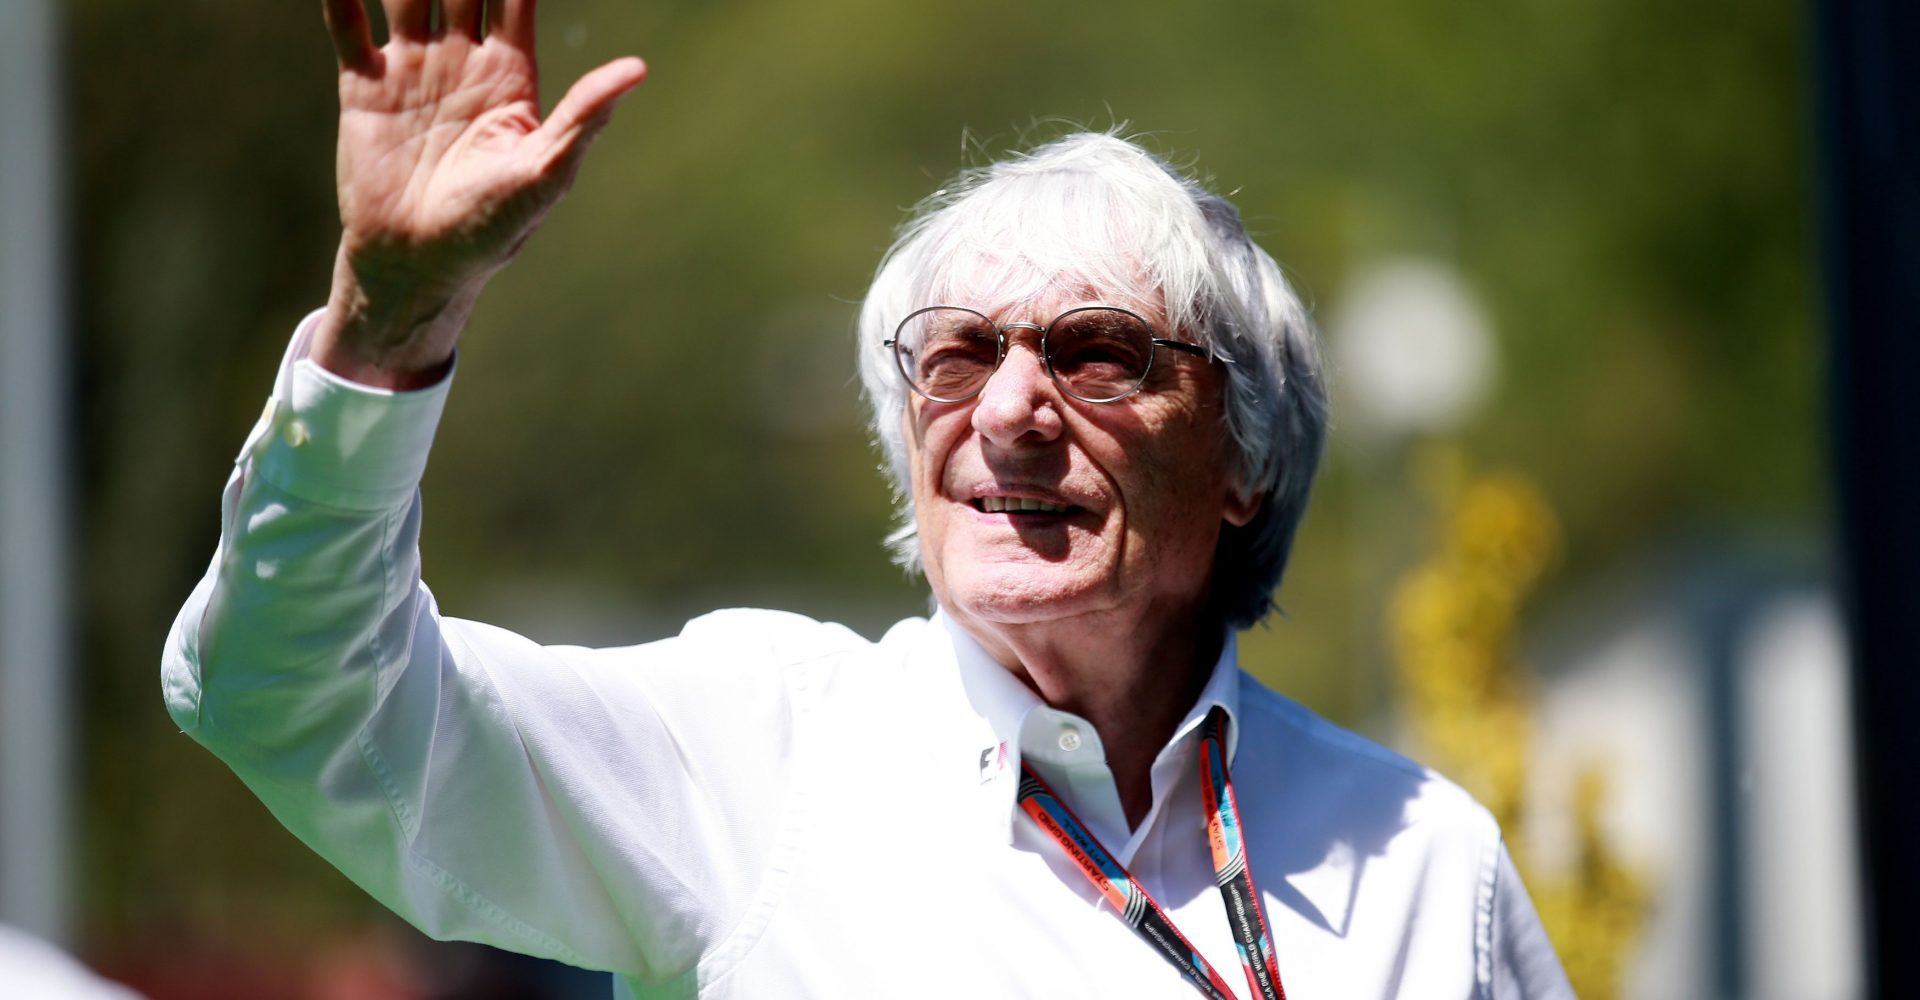 The Formula 1 'Dictatorship' Is At An End As Ecclestone Goes